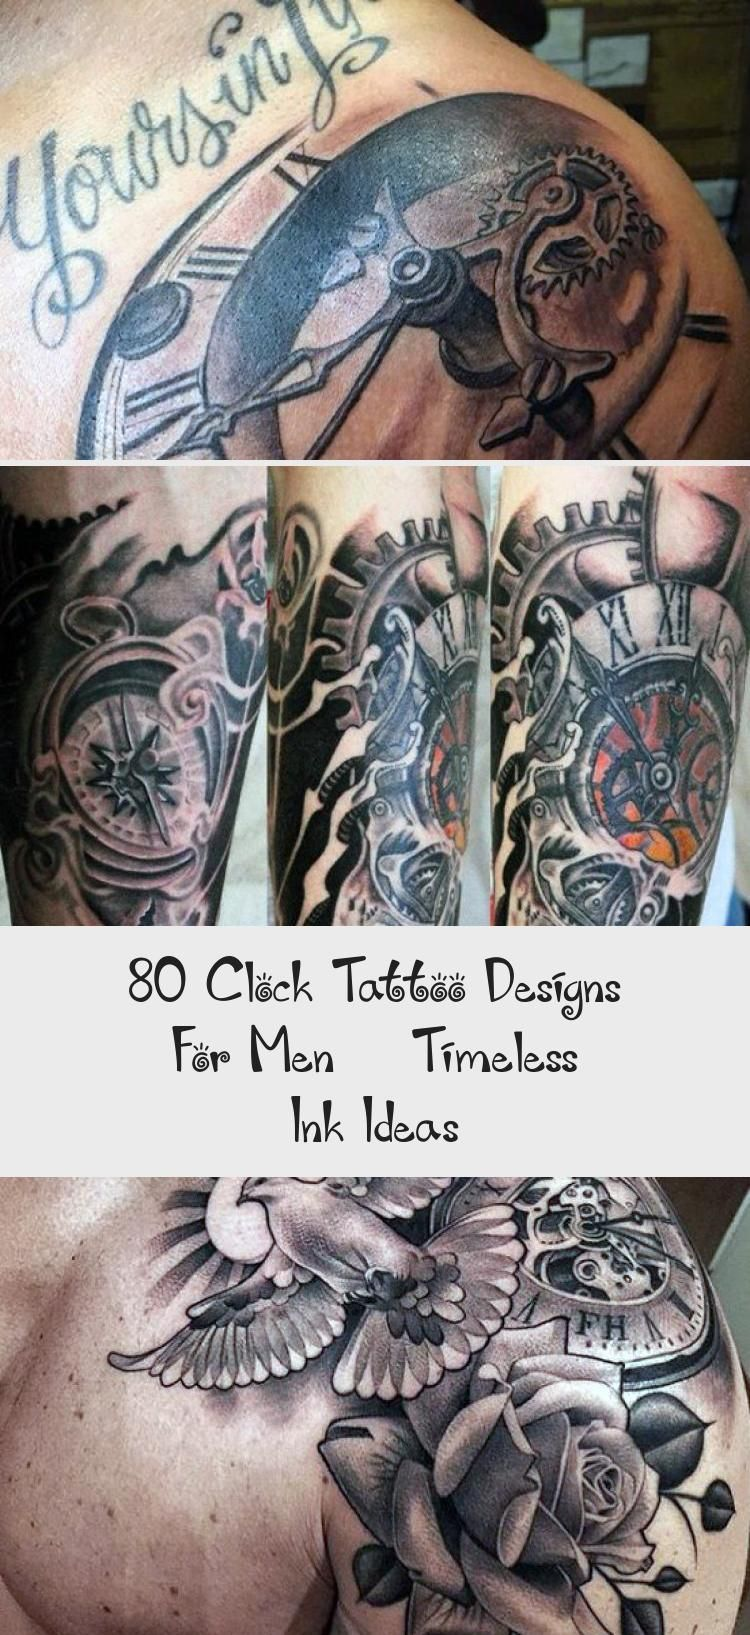 80 Clock Tattoo Designs For Men Timeless Ink Ideas in